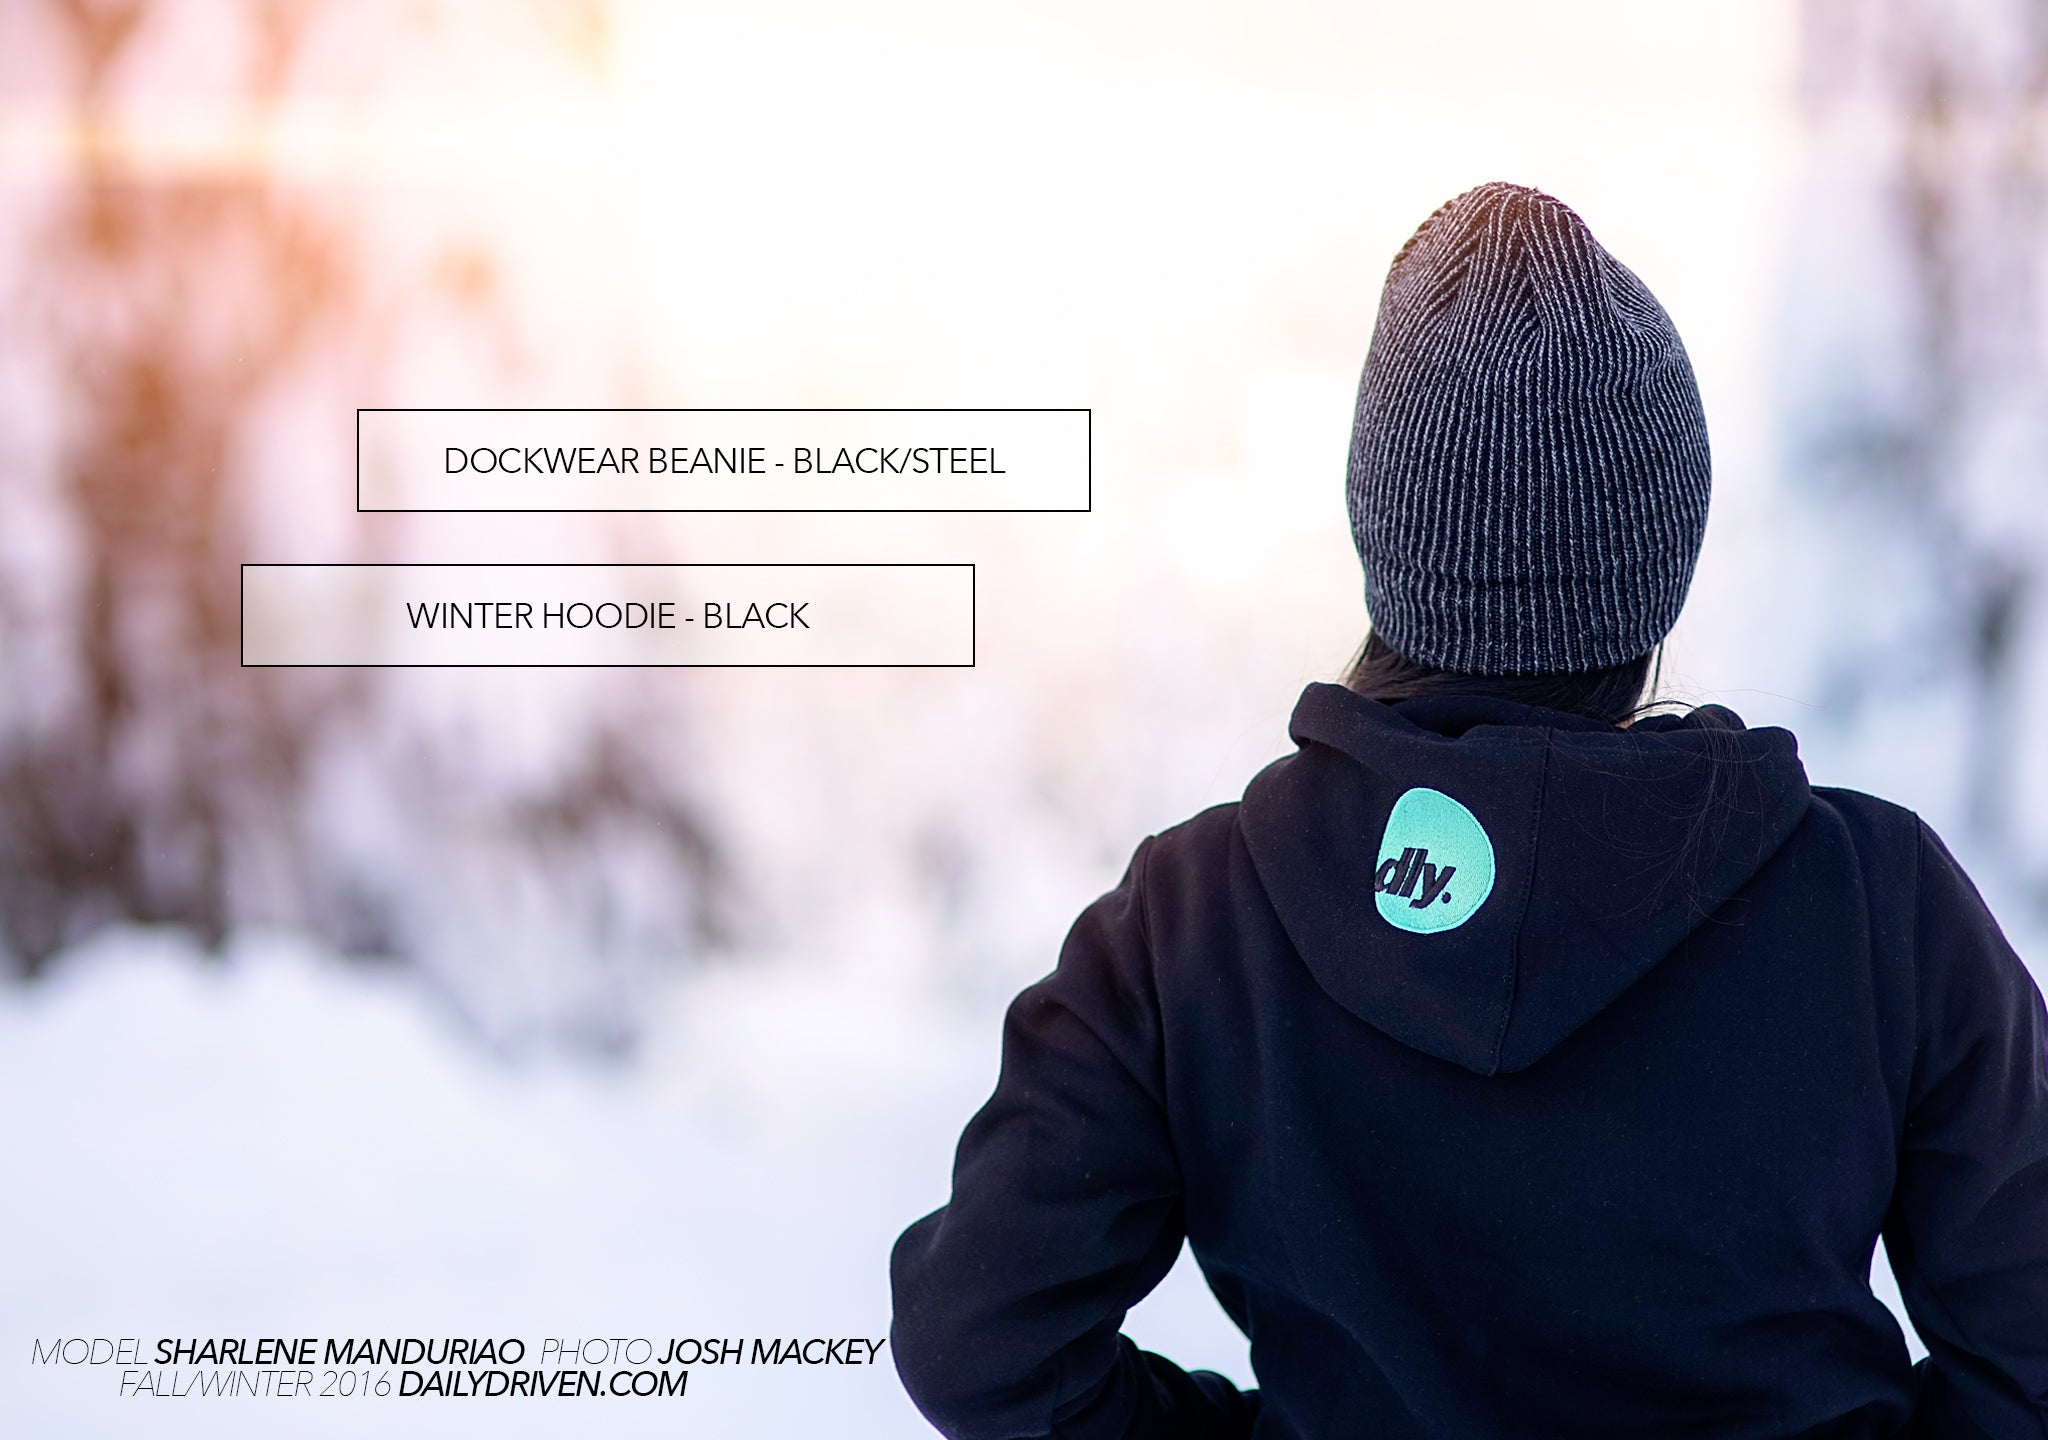 DailyDriven Dockwear Beanie Black Steel Winter Hoodie Black Mint